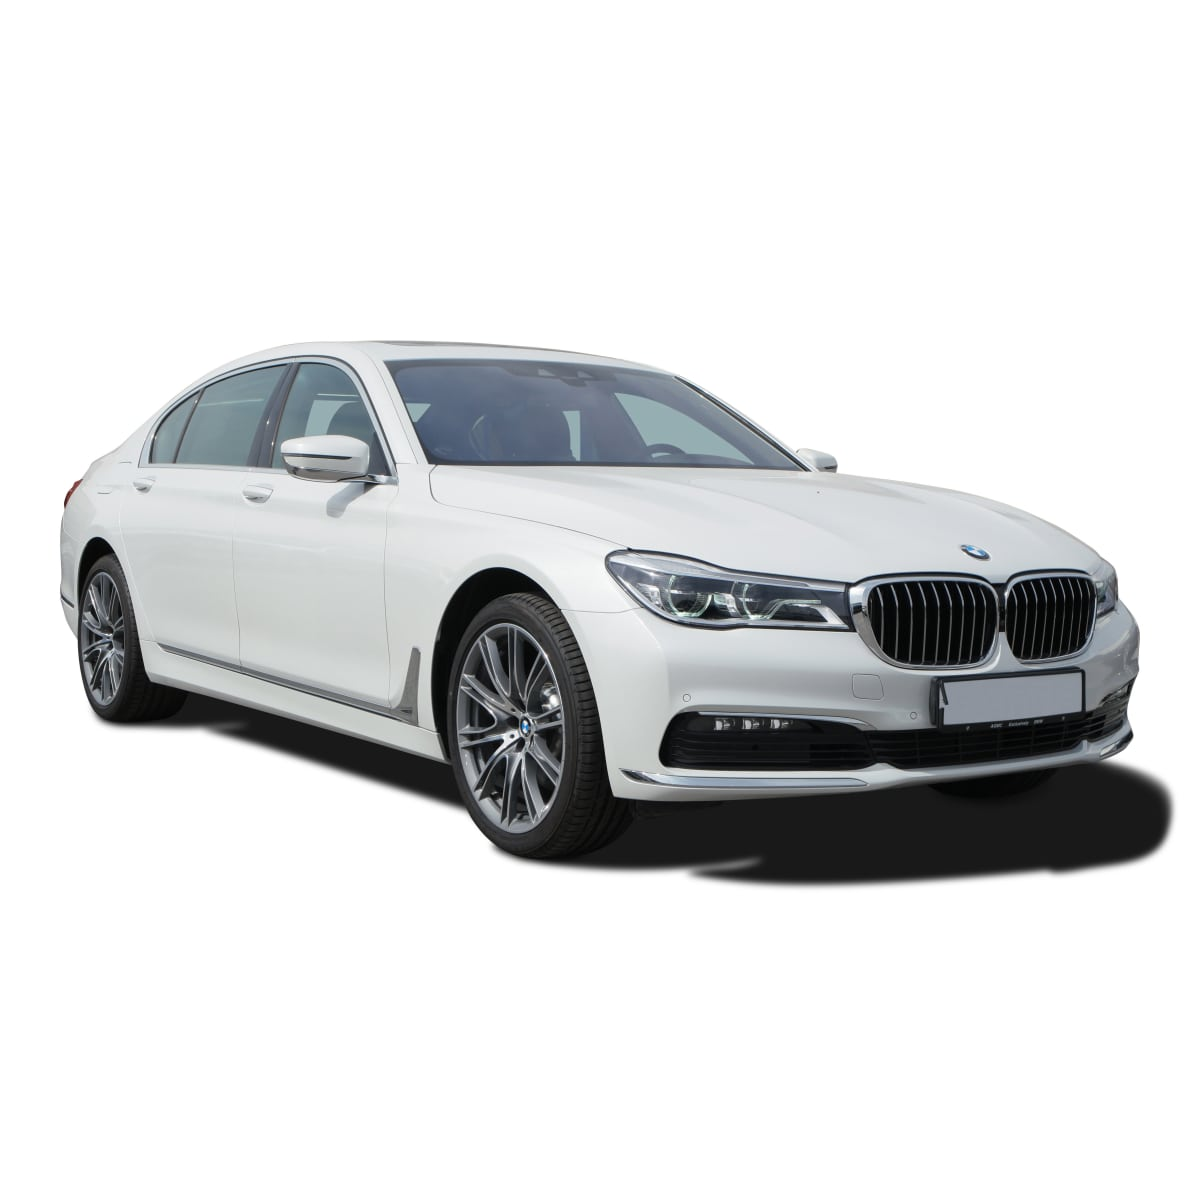 2018 Bmw 7-Series 730Li Exclusive